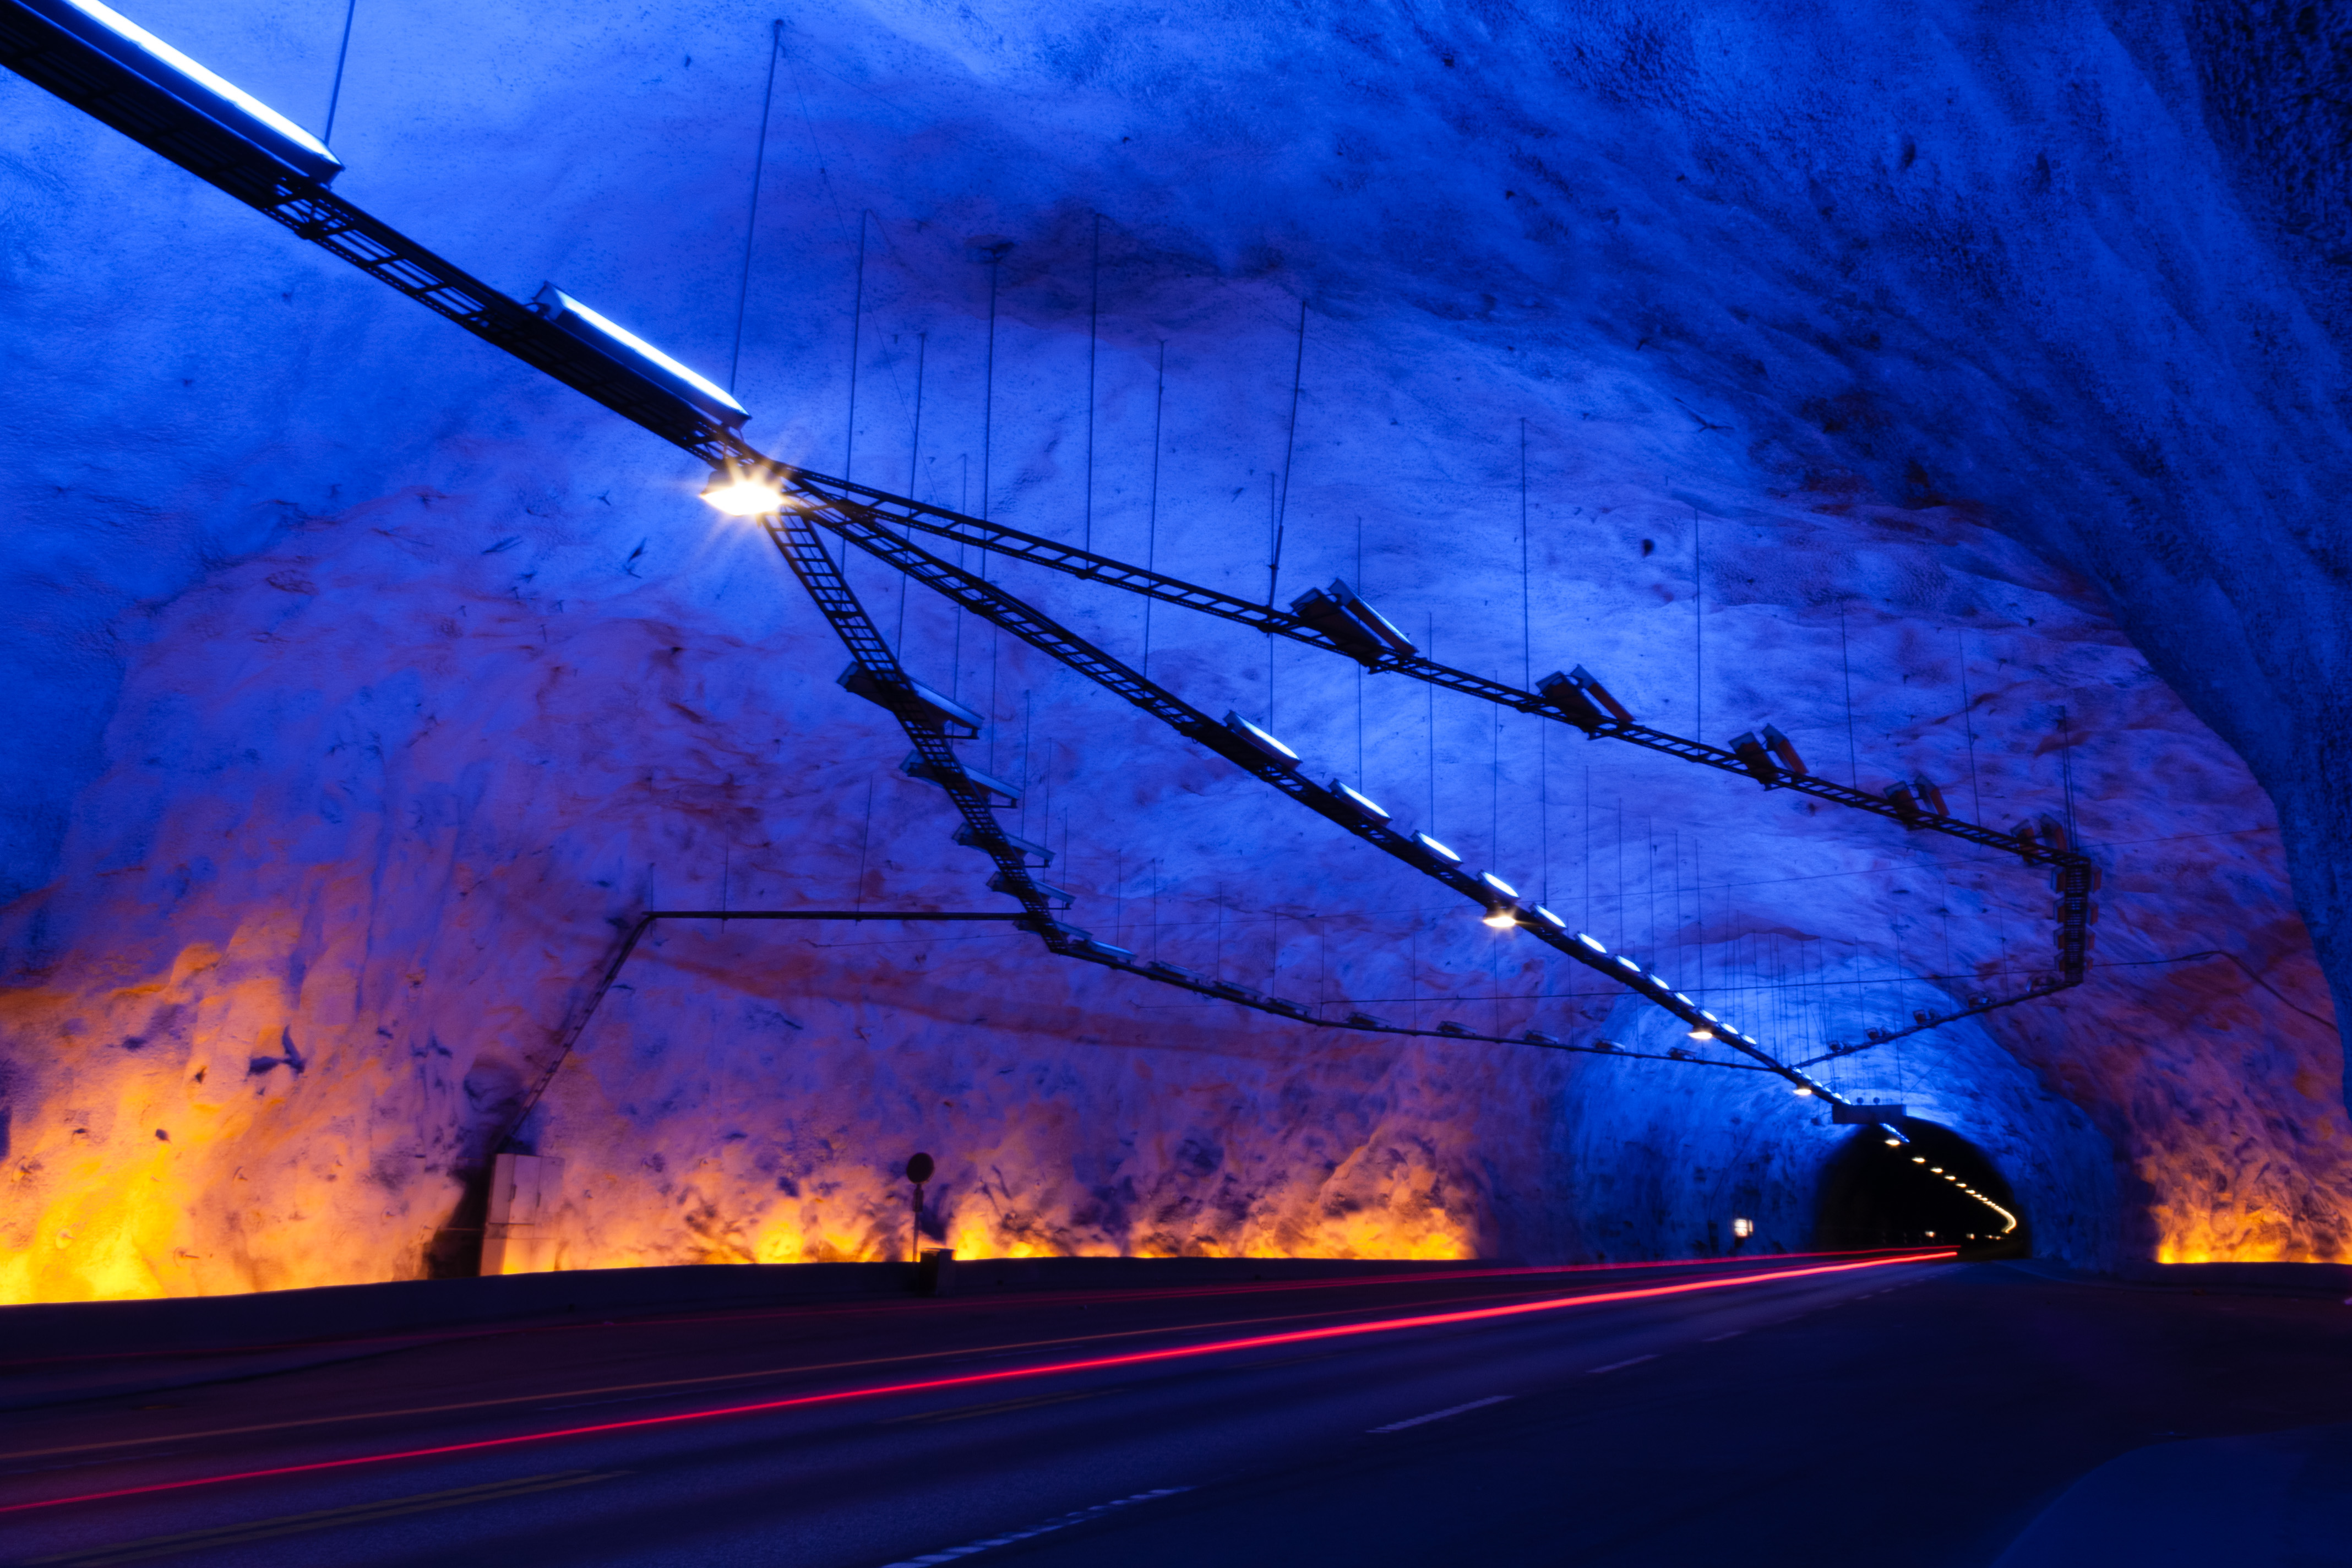 121315 download wallpaper Cities, Dark, Backlight, Illumination, Lighting, Tunnel, Underground screensavers and pictures for free